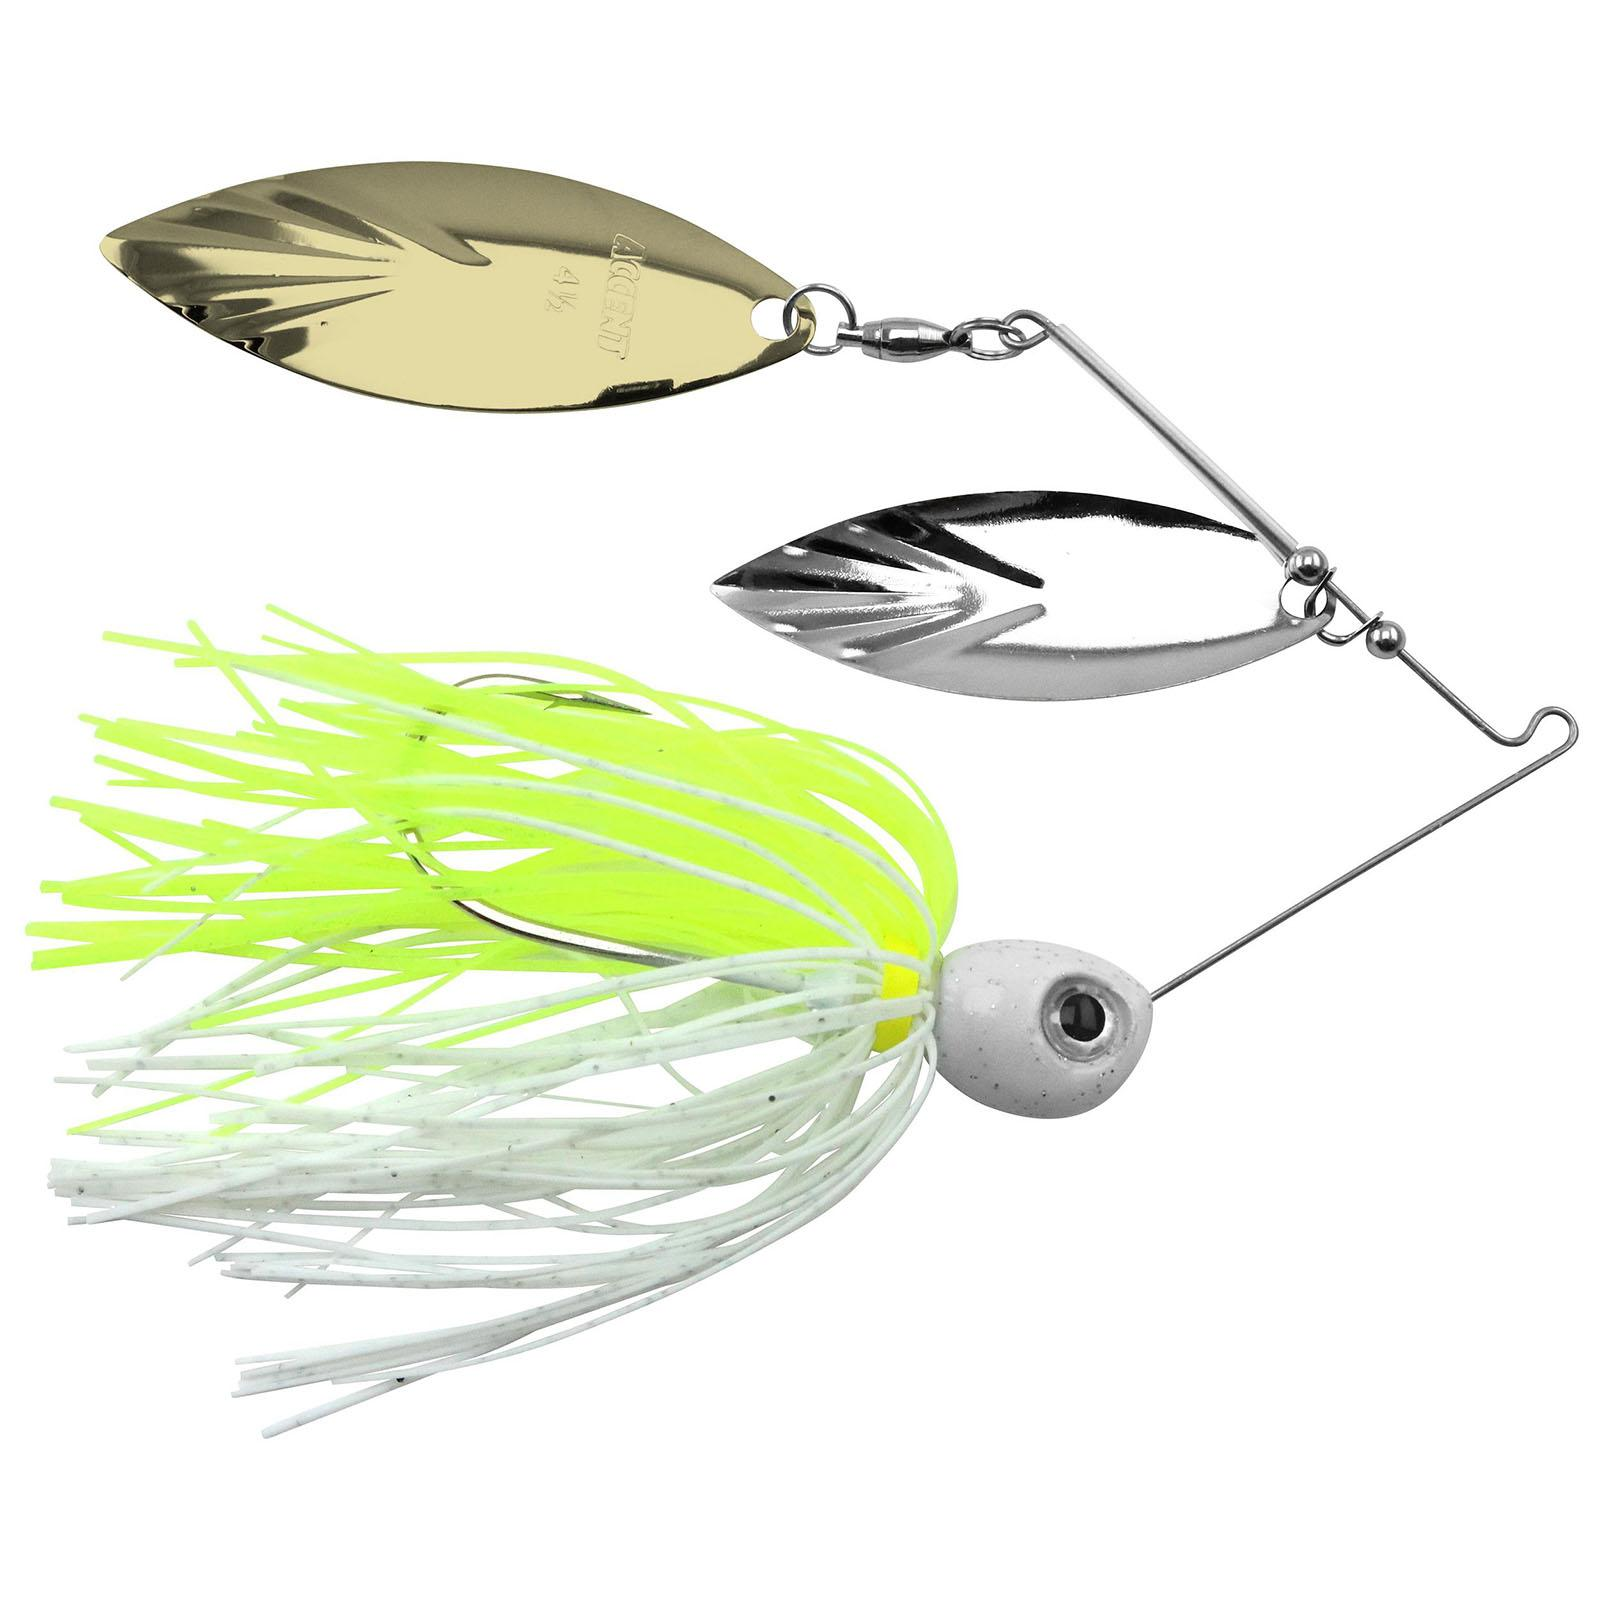 Accent River Special Double Willow Spinnerbait Color Nickel/Gold Blades - Chartreuse/White Skirt Weight 1/4 oz thumbnail